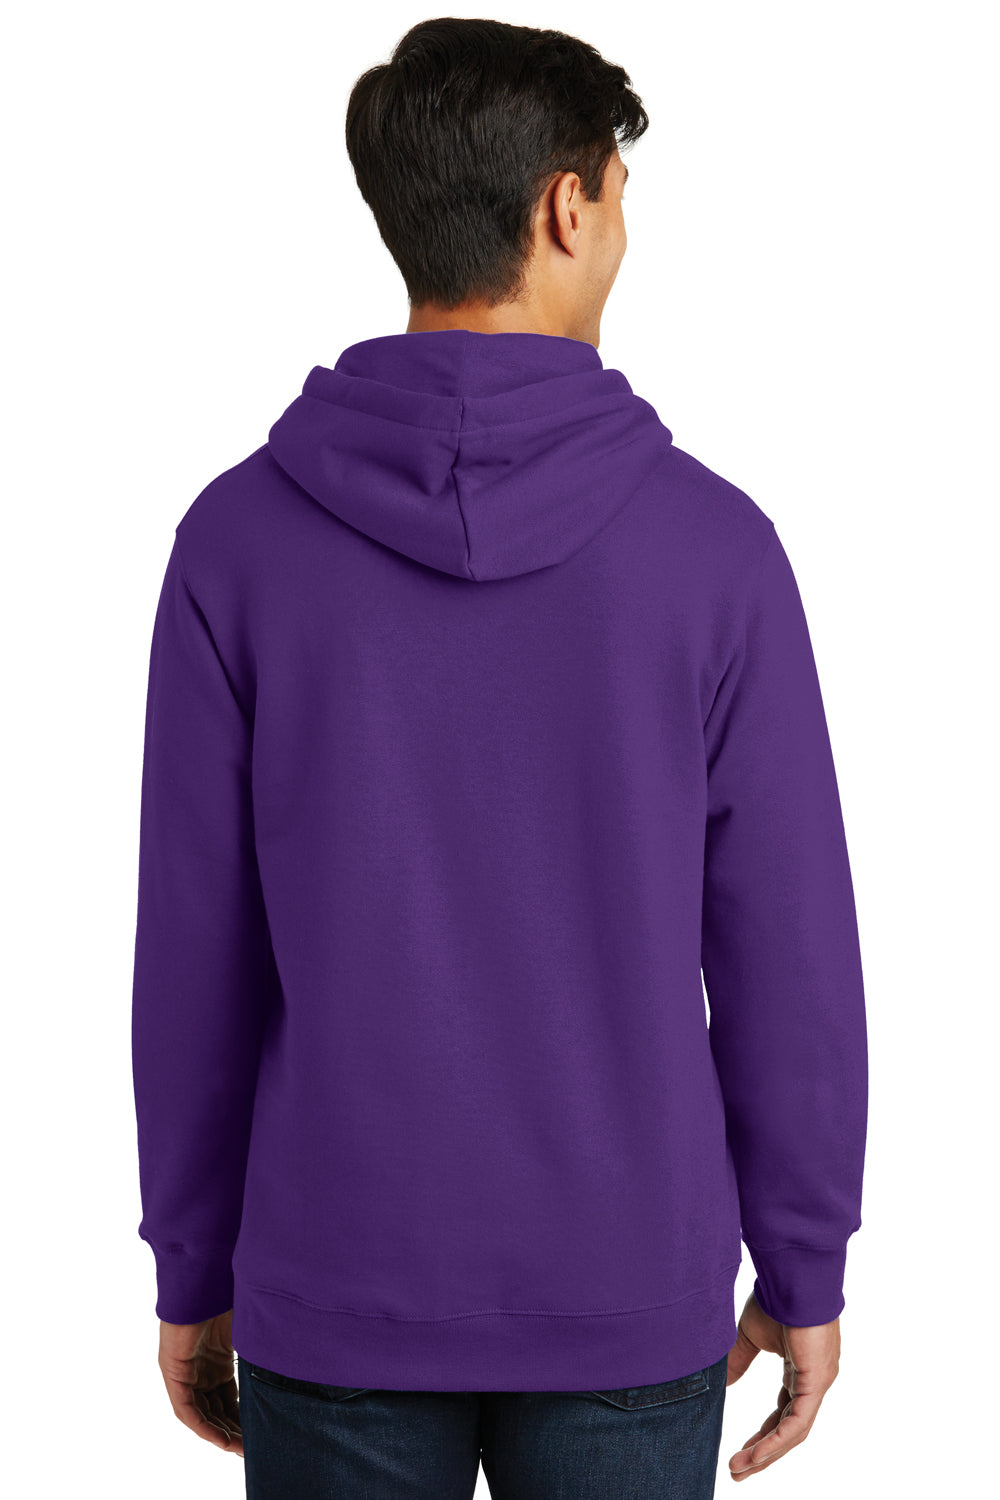 Port & Company PC850H Mens Fan Favorite Fleece Hooded Sweatshirt Hoodie Purple Back